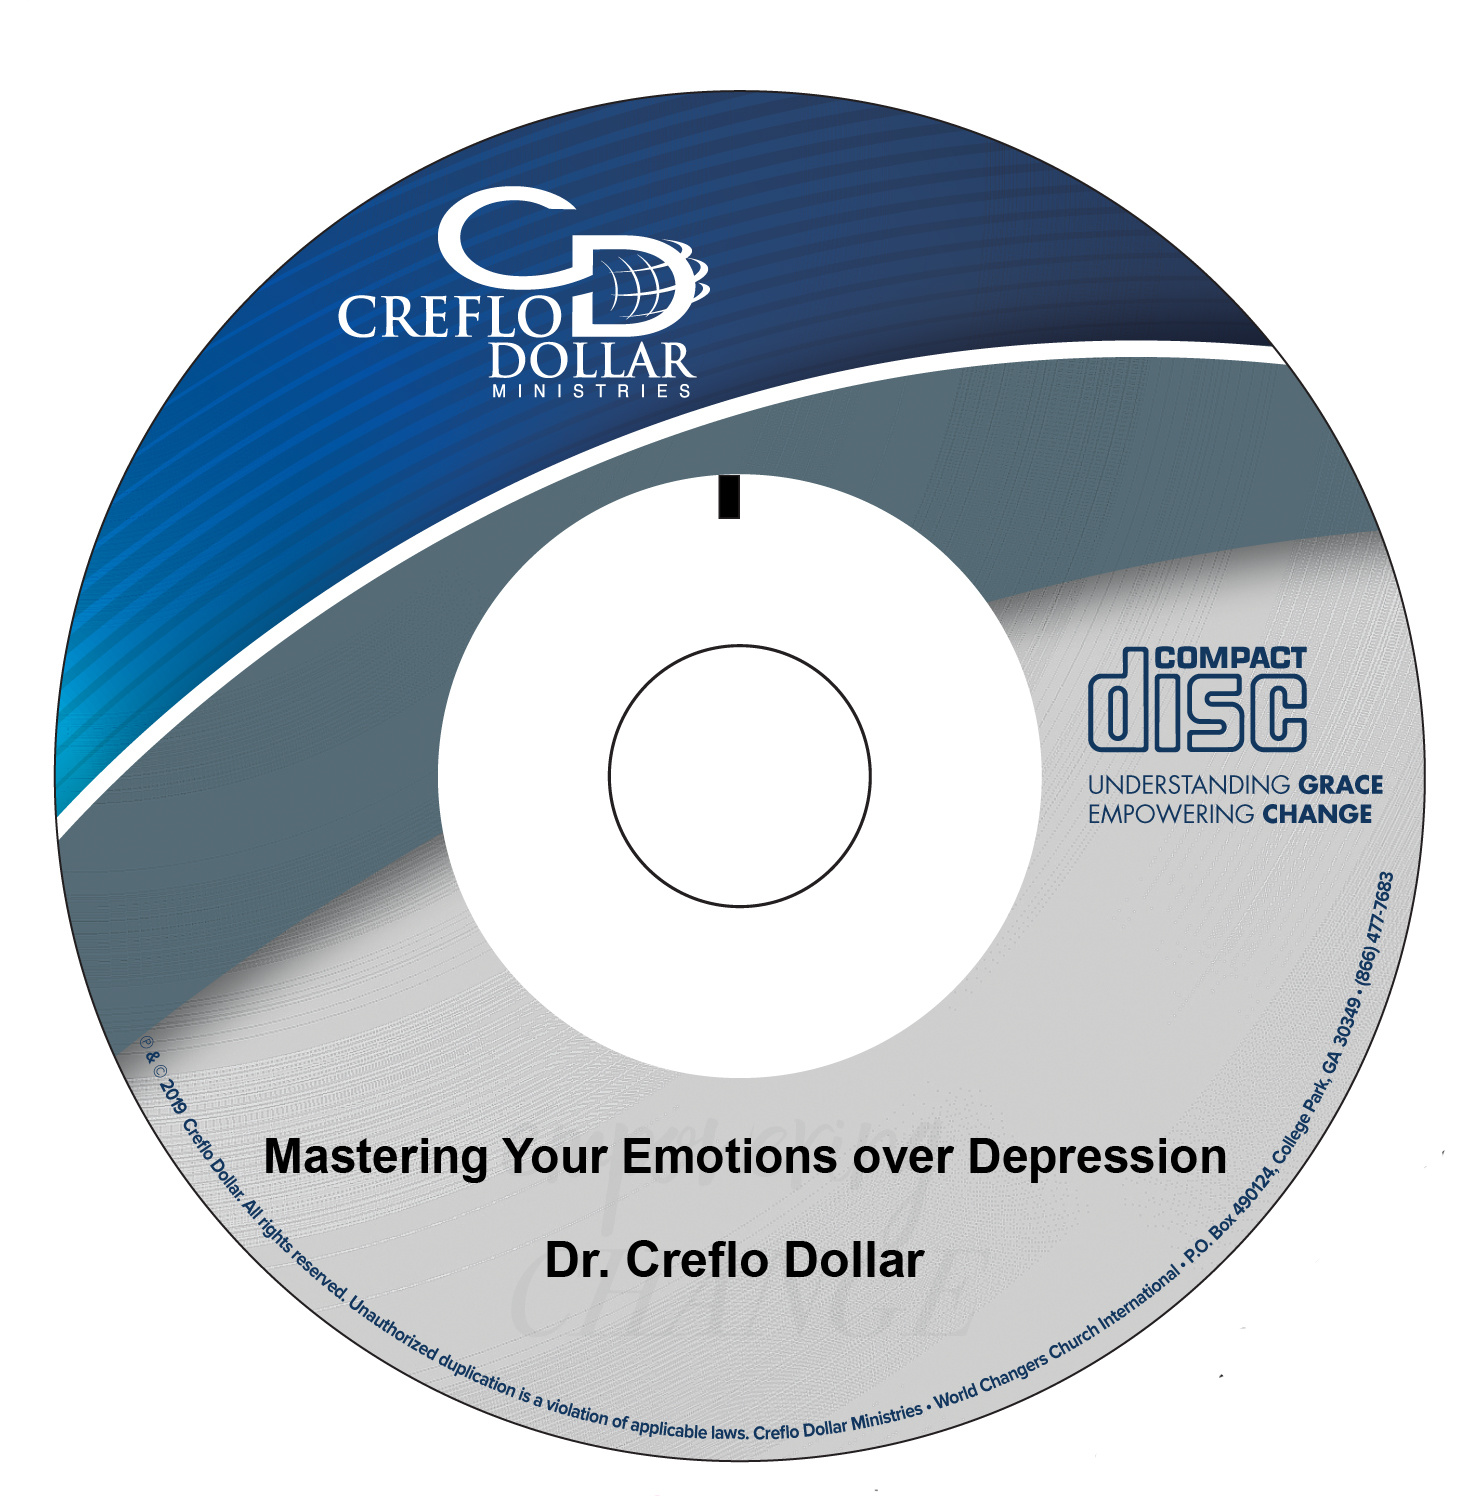 Mastering Your Emotions over Depression - CD Single